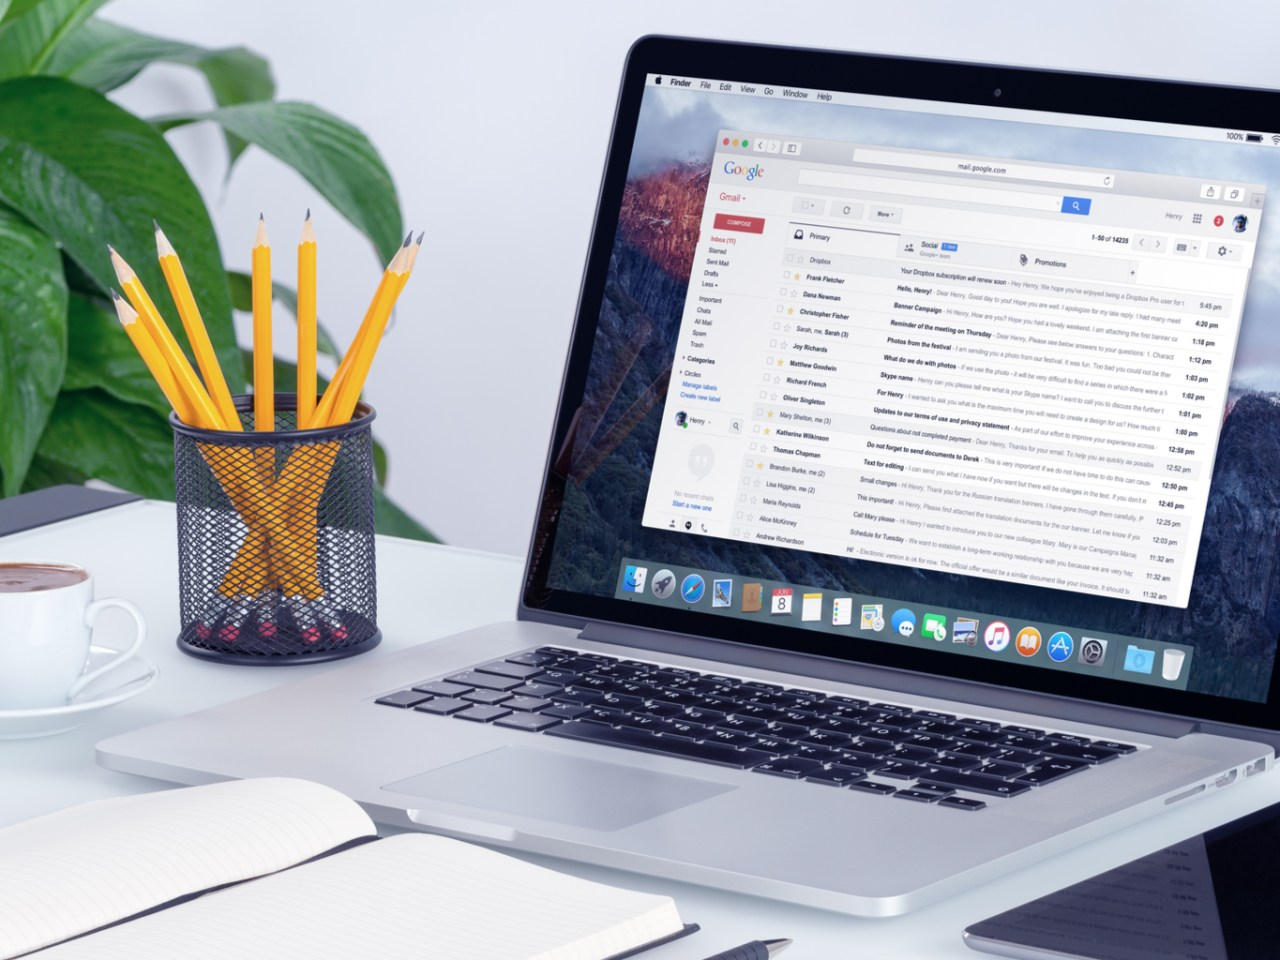 Change or reset your Gmail password from Desktop / Laptop